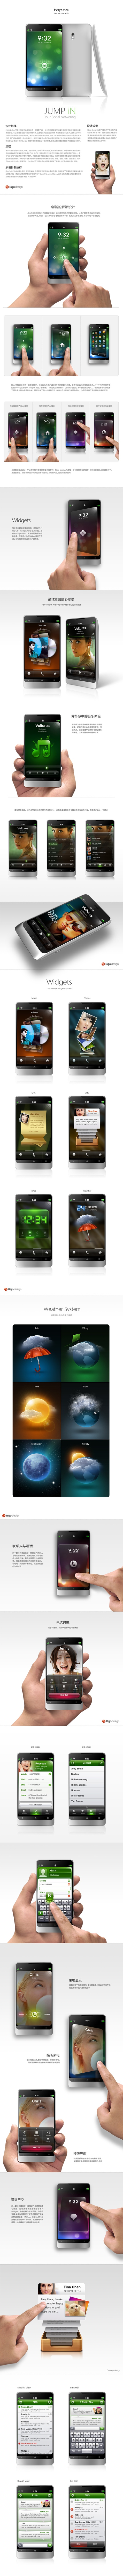 """""""TAPAS Phone OS design"""" by RIGO design. Some interesting ideas, if admittedly skewing a bit too far into skeumorphism at points."""